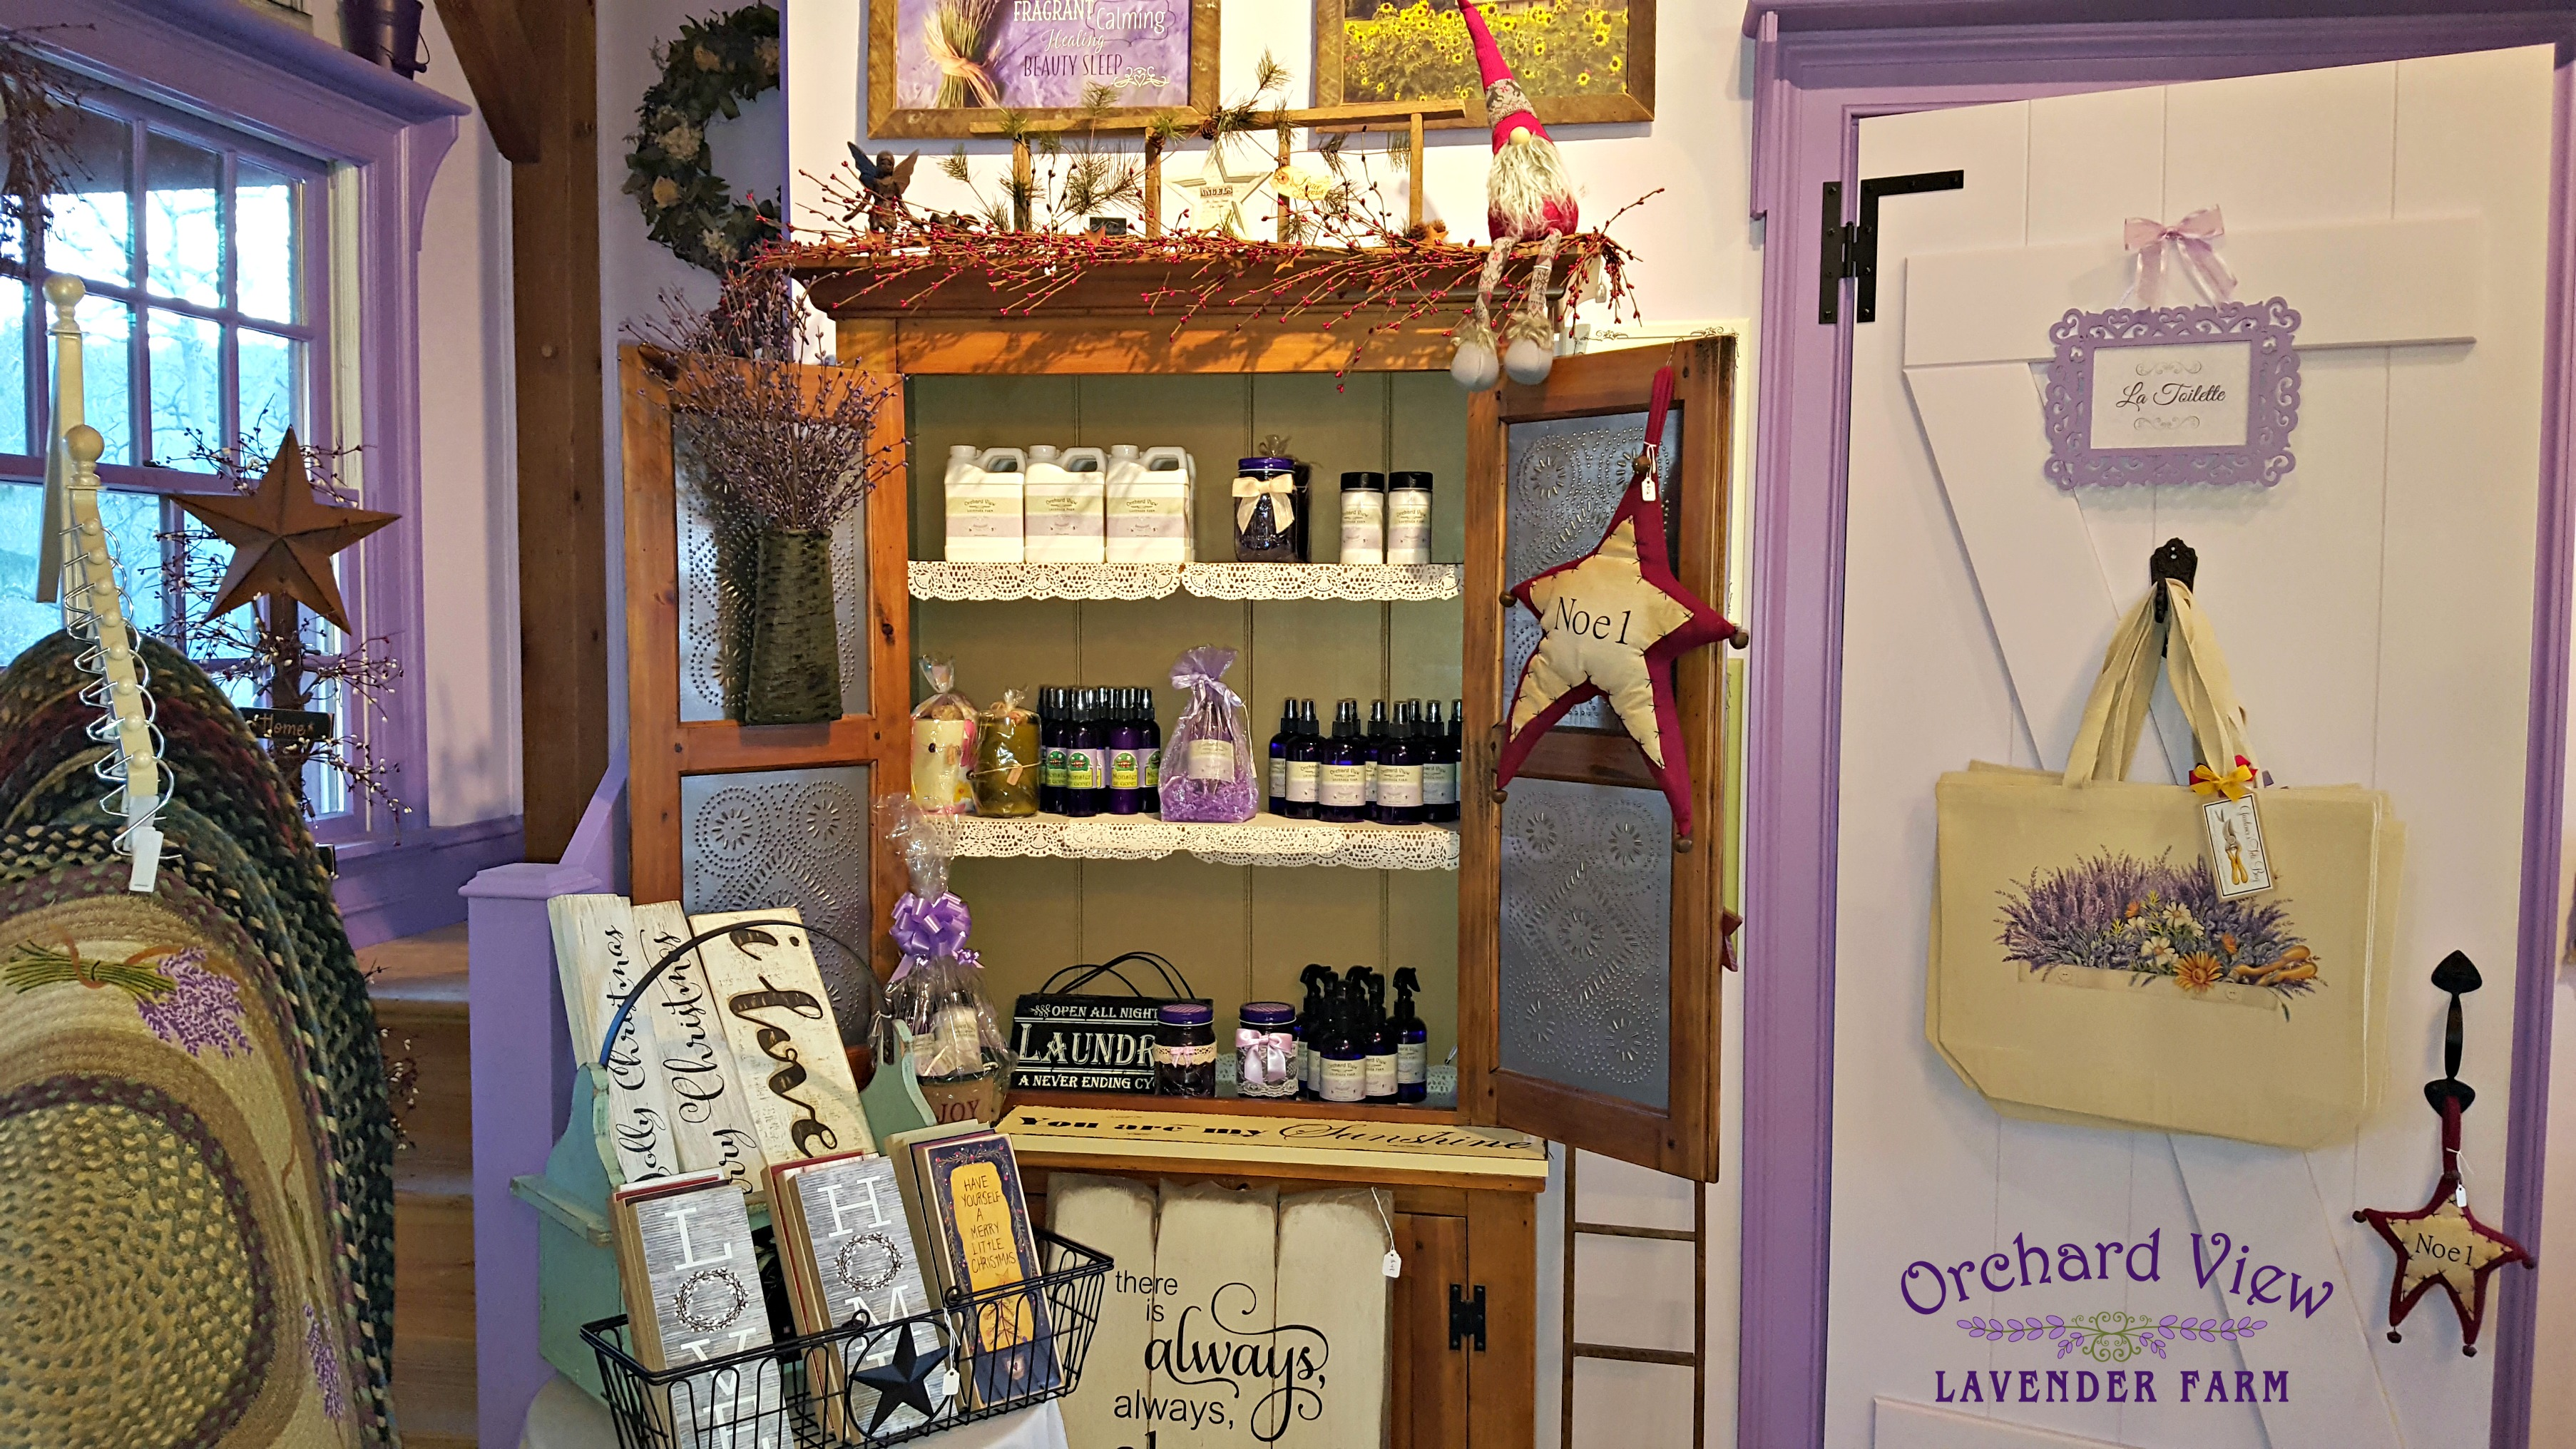 The Lavender Farm Stand